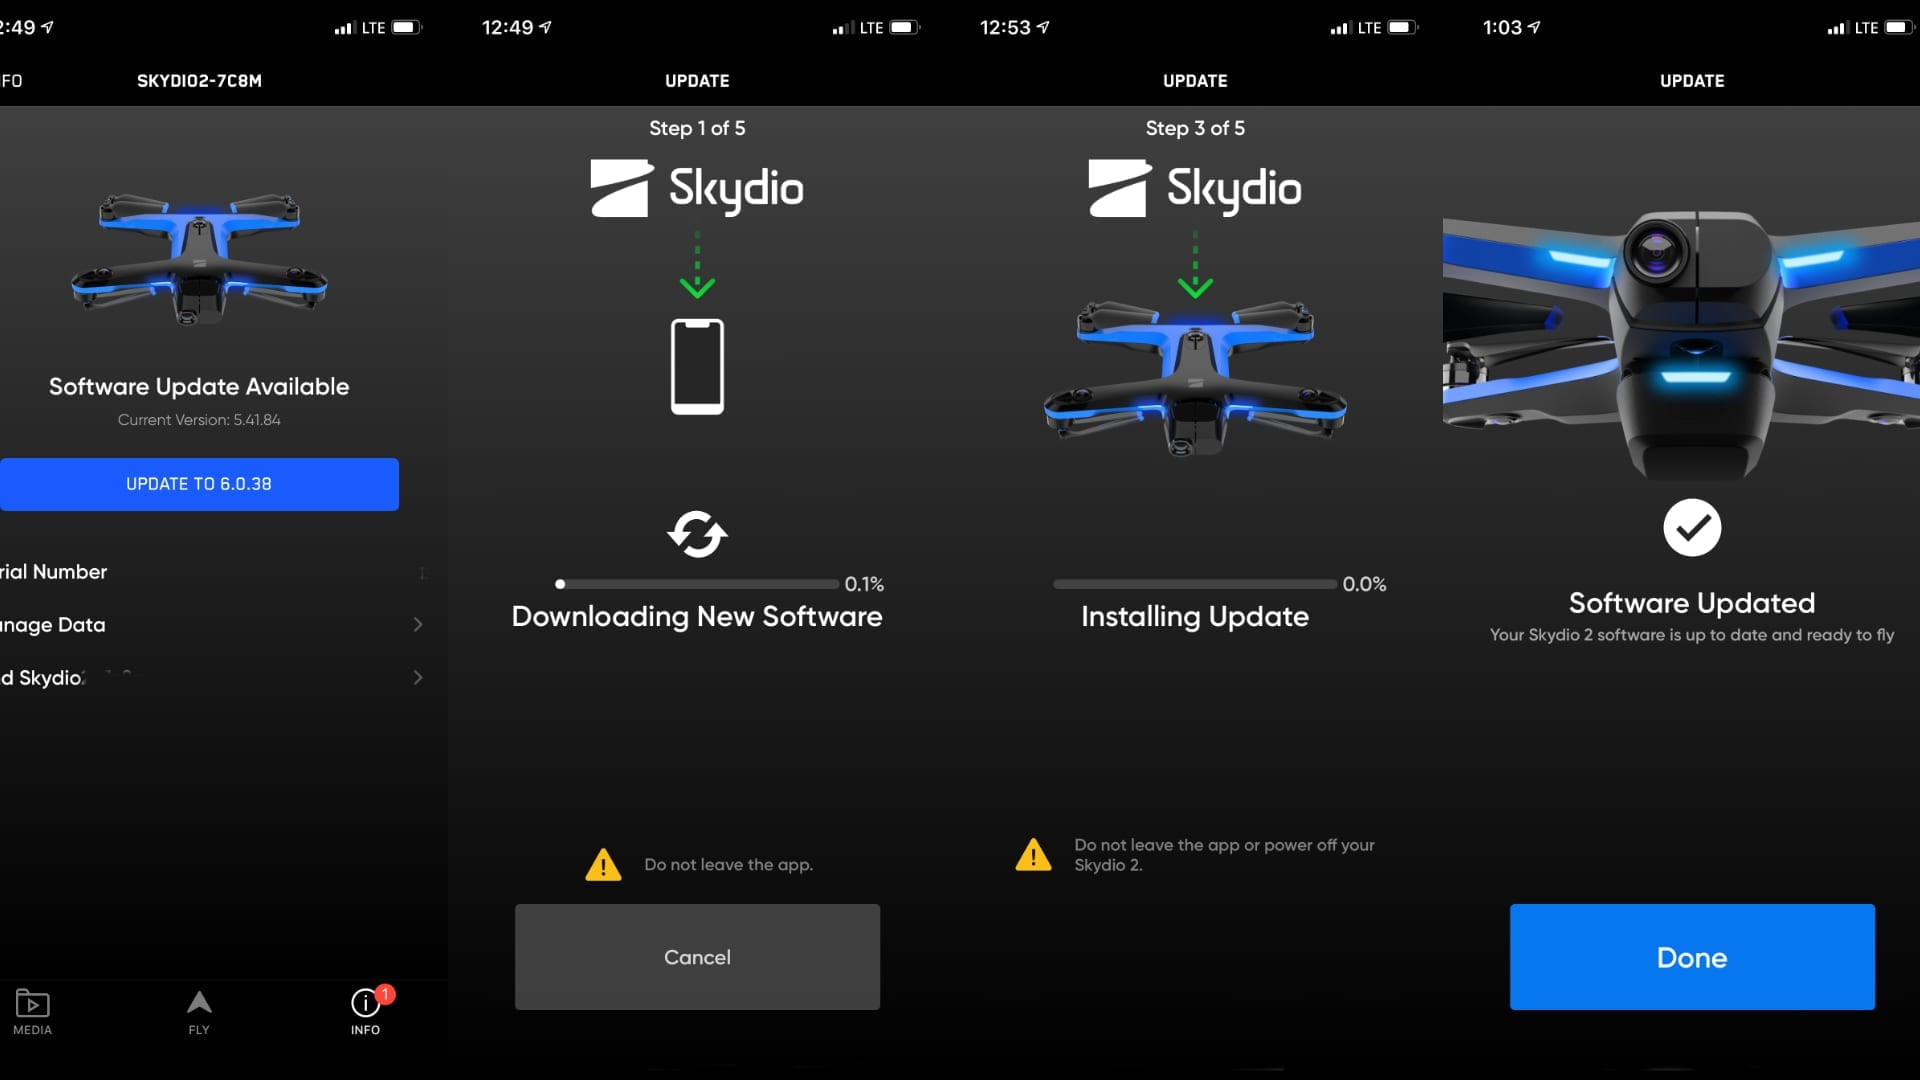 Skydio releases iOS firmware update for the Skydio 2 drone - Version 6.0.38